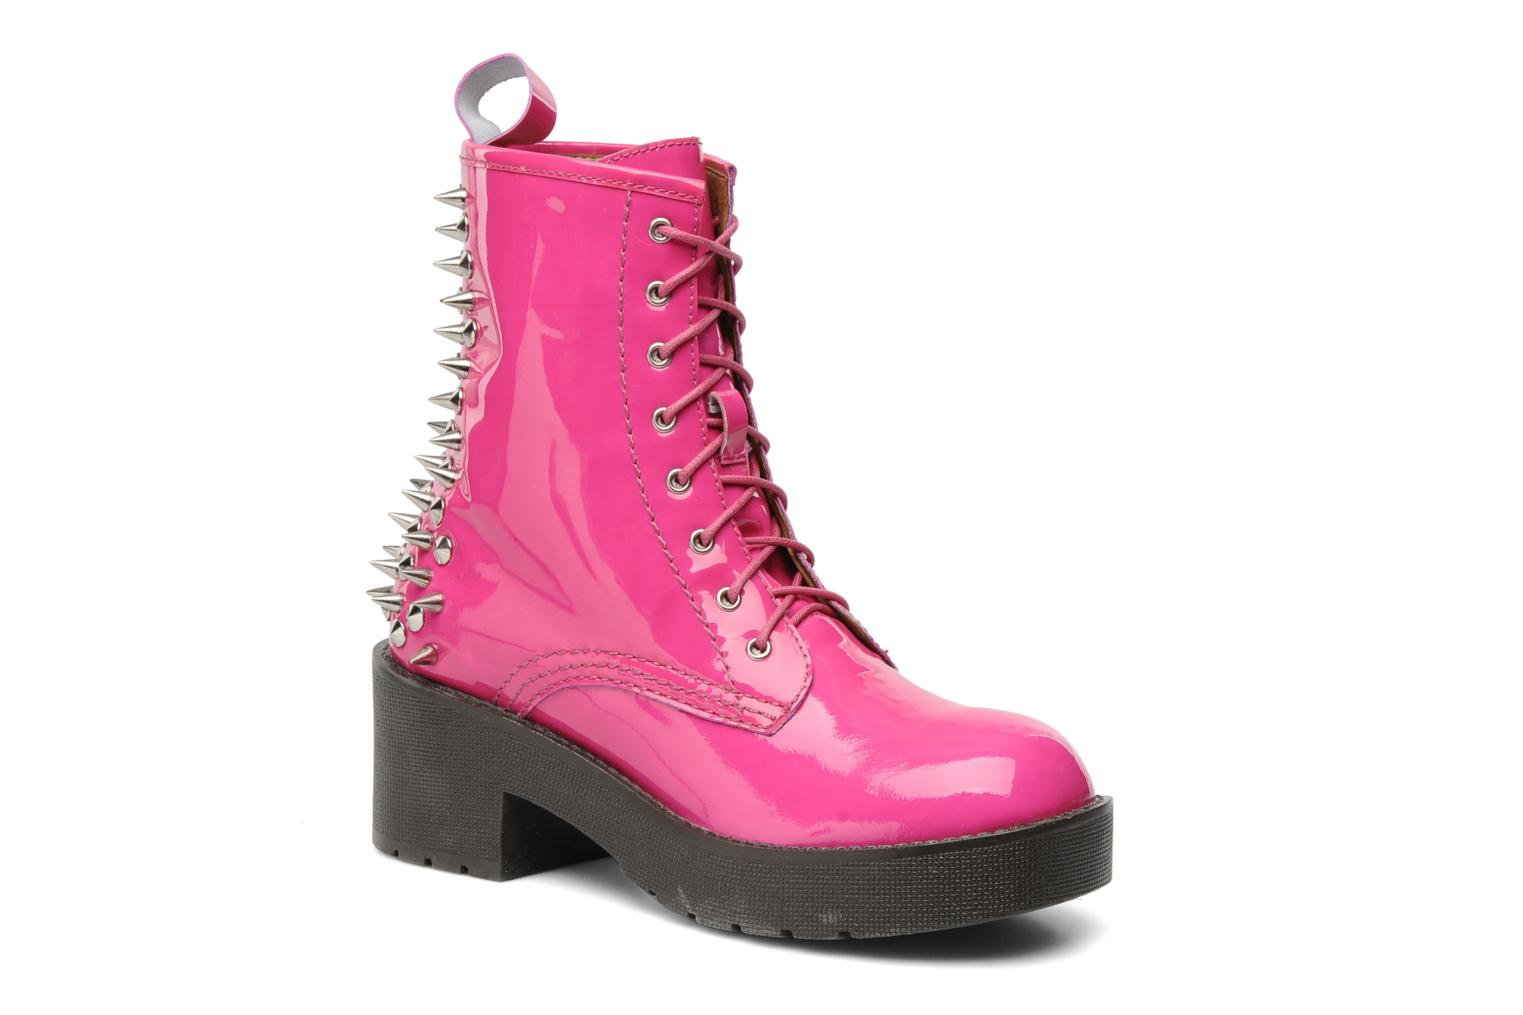 Bottines et boots Jeffrey Campbell 8TH STREET Rose vue détail/paire